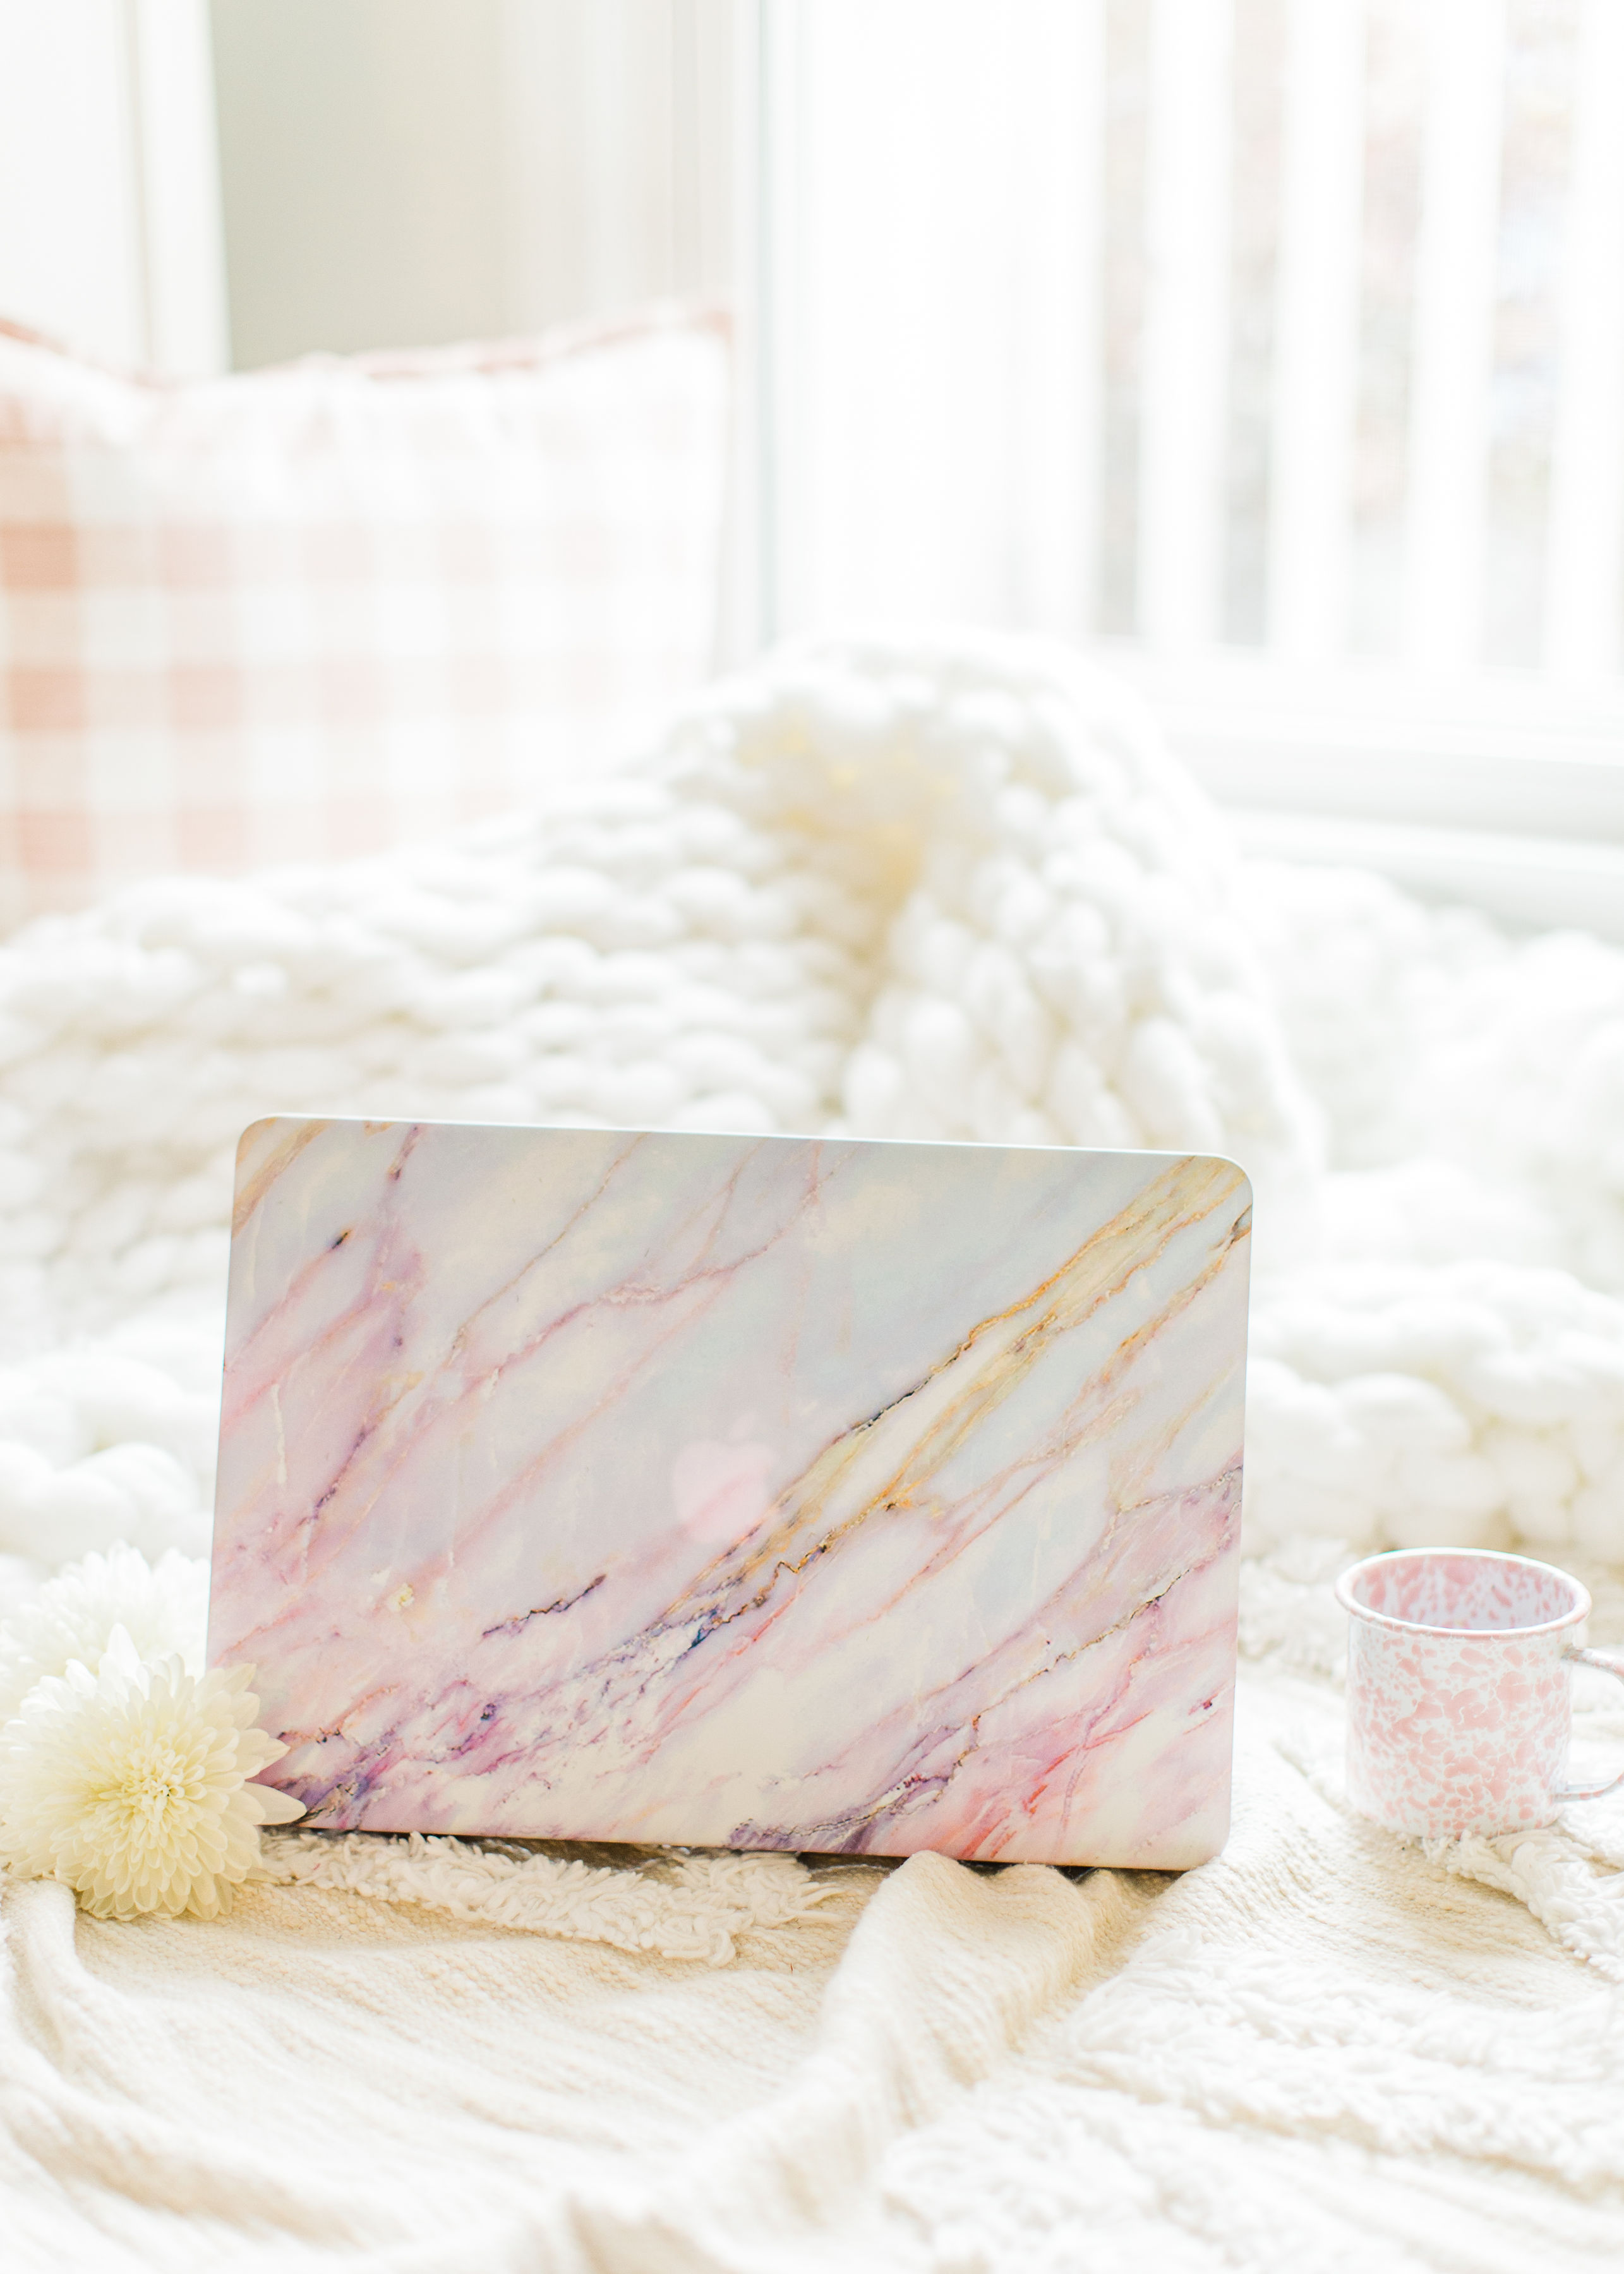 Black Friday weekend is upon us and the sales have already begun. I'm rounding up the best Black Friday and Cyber Monday sales, and updating here daily. Click through for the details. #laptop #blogger #marblelaptopcase #coffee | glitterinc.com | @glitterinc